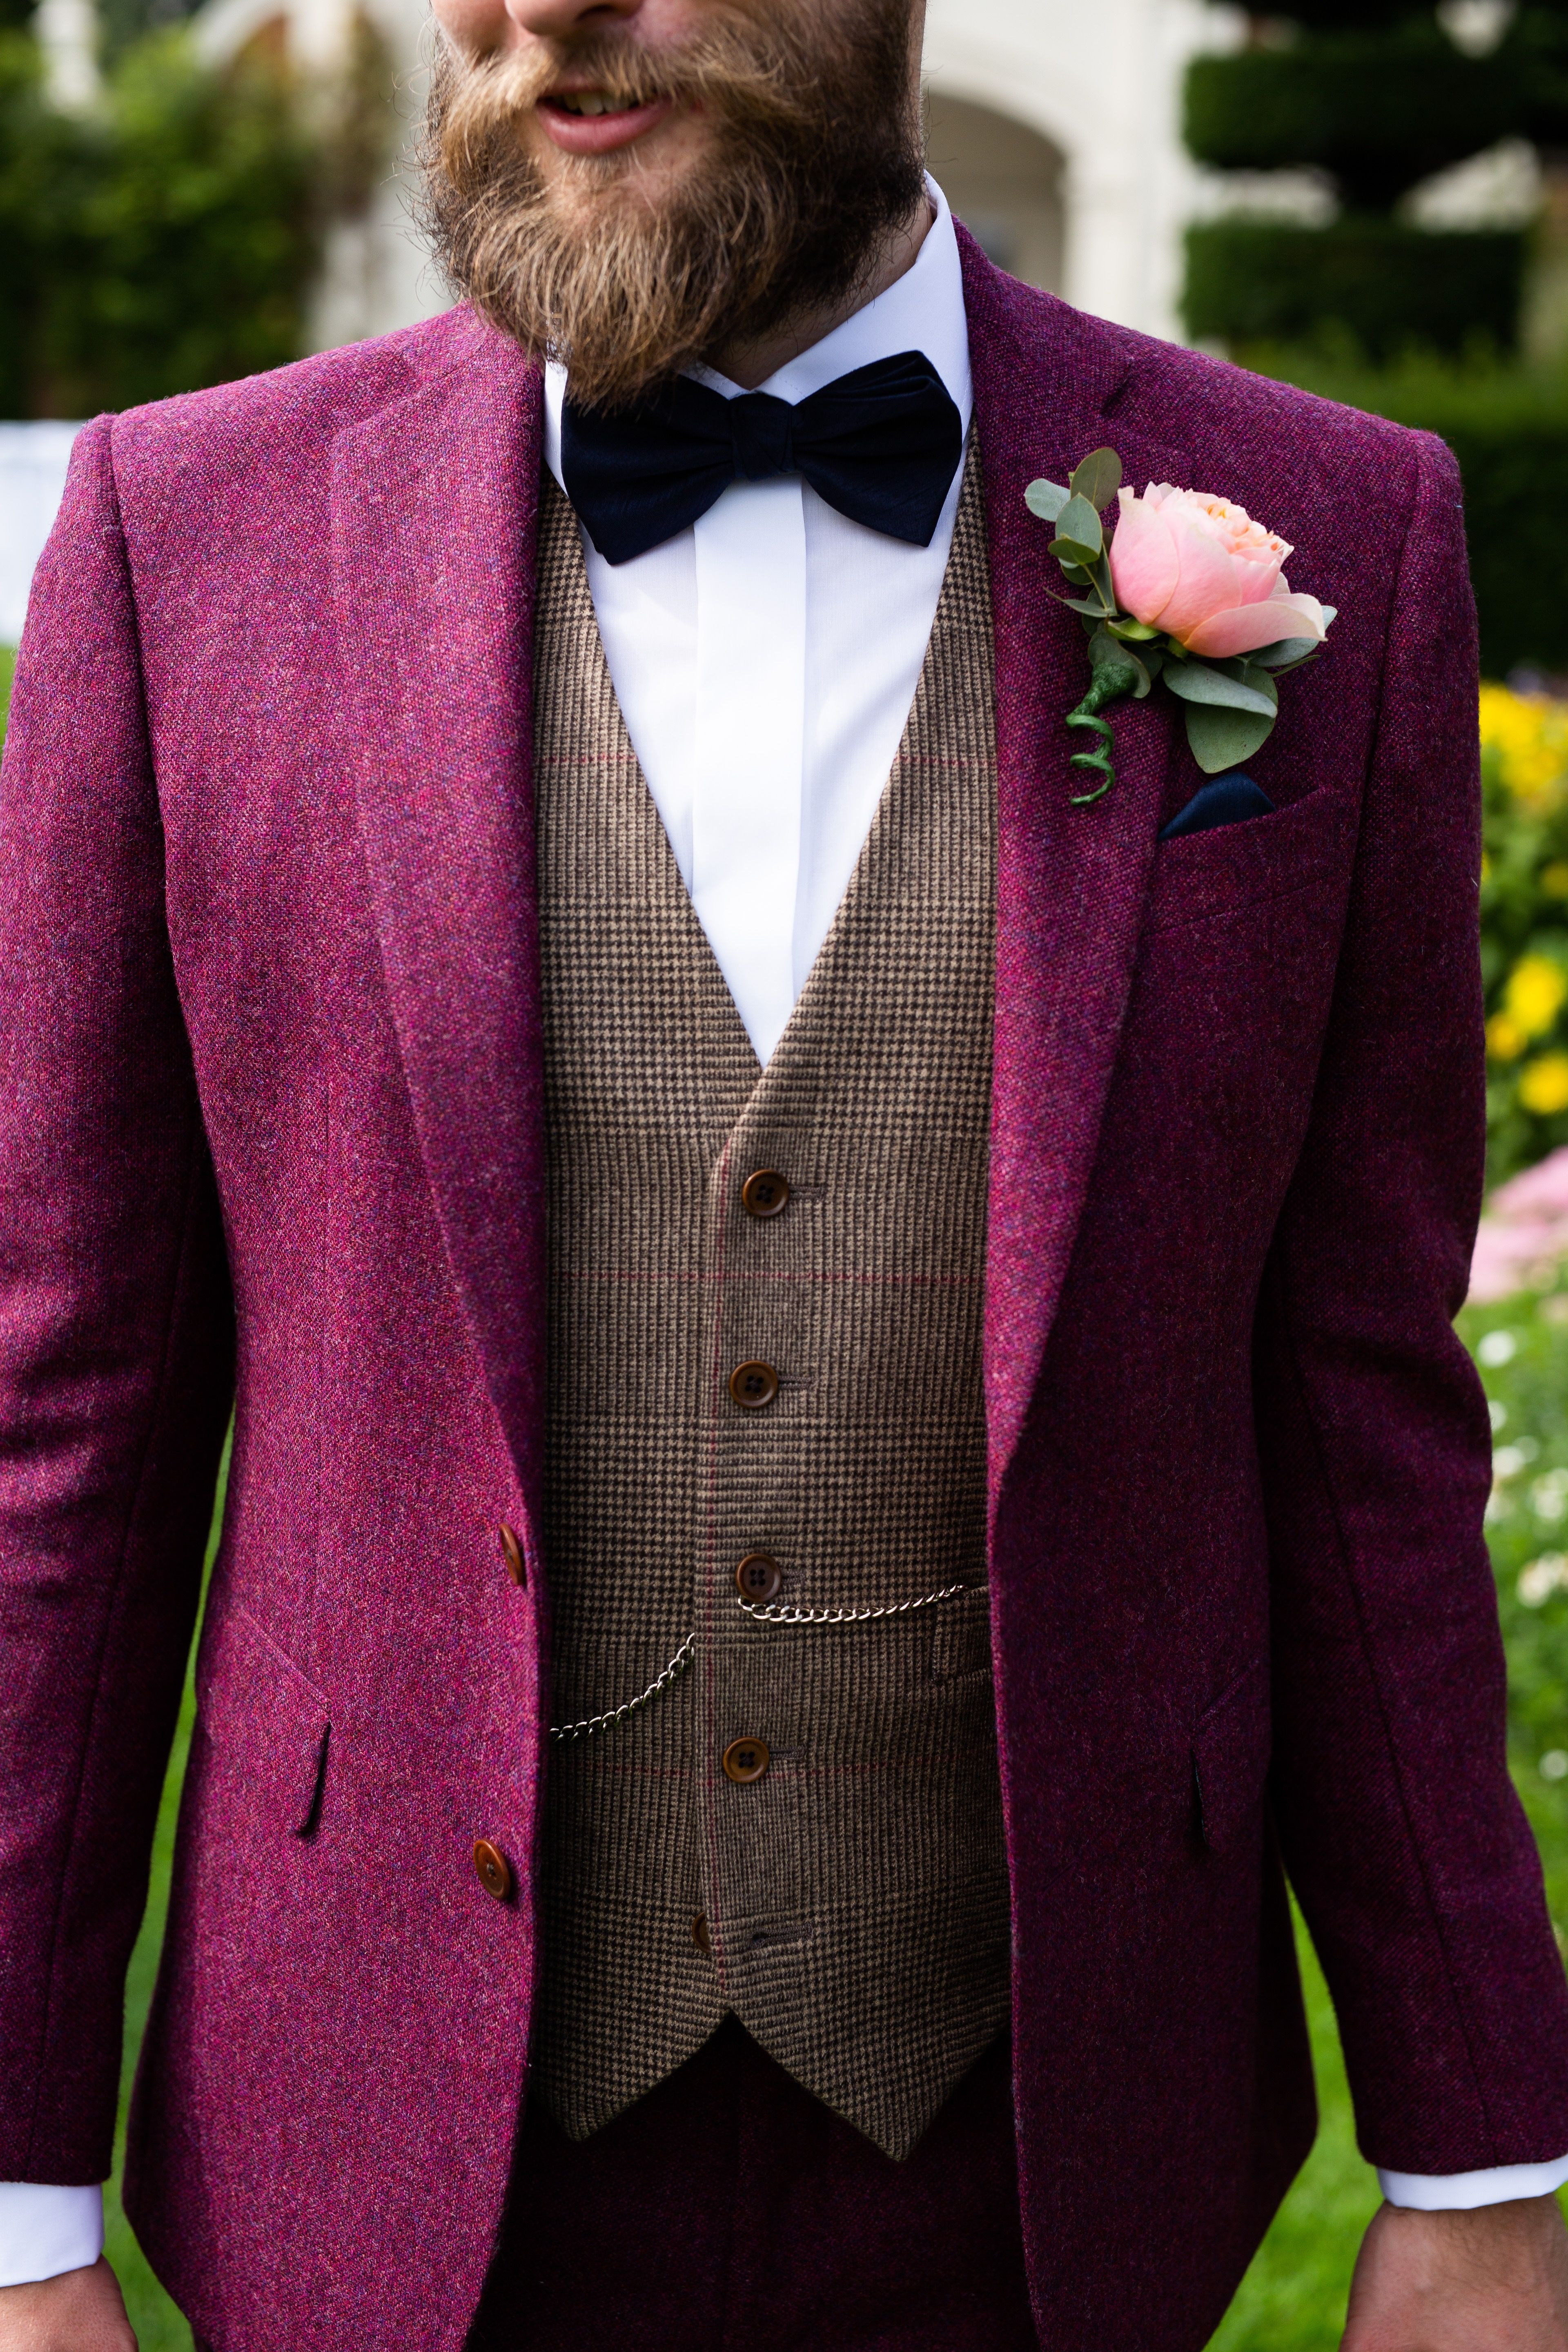 Tailored Donegal Tweed Suit. Stunning burgundy suit teamed